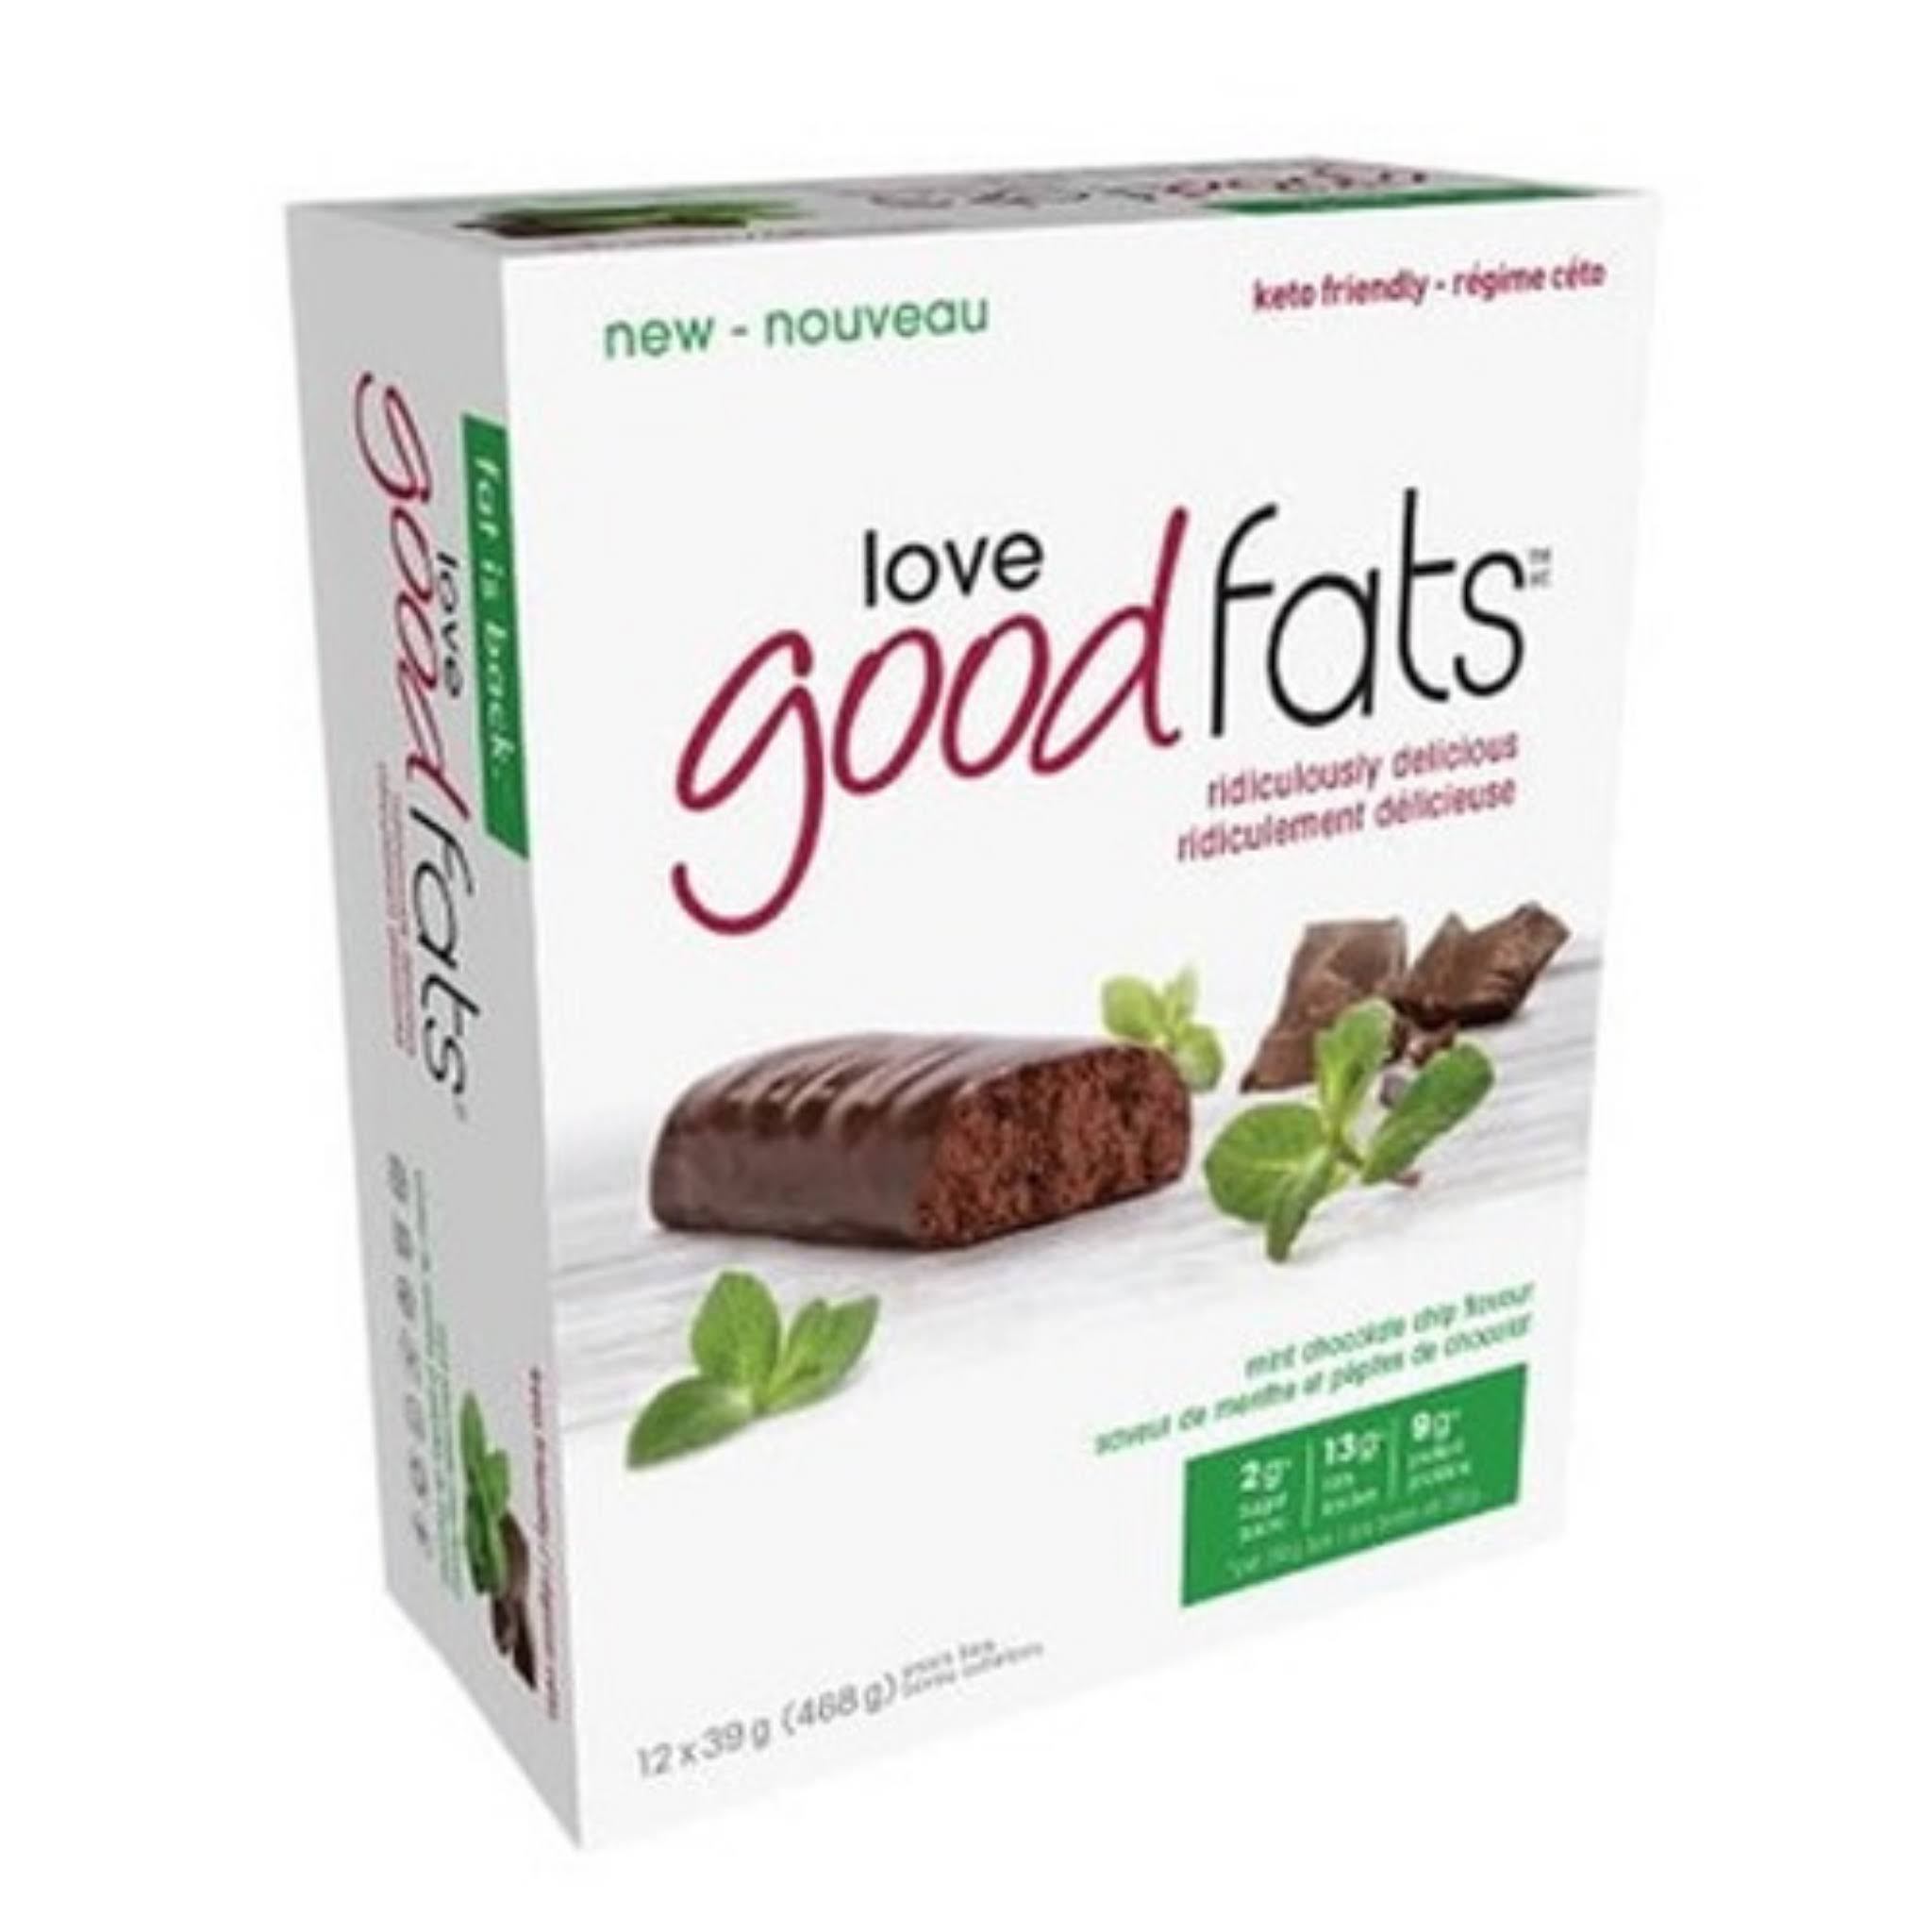 Love Good Fats Mint Chocolate Snack Bar 12ct, 39 Gr